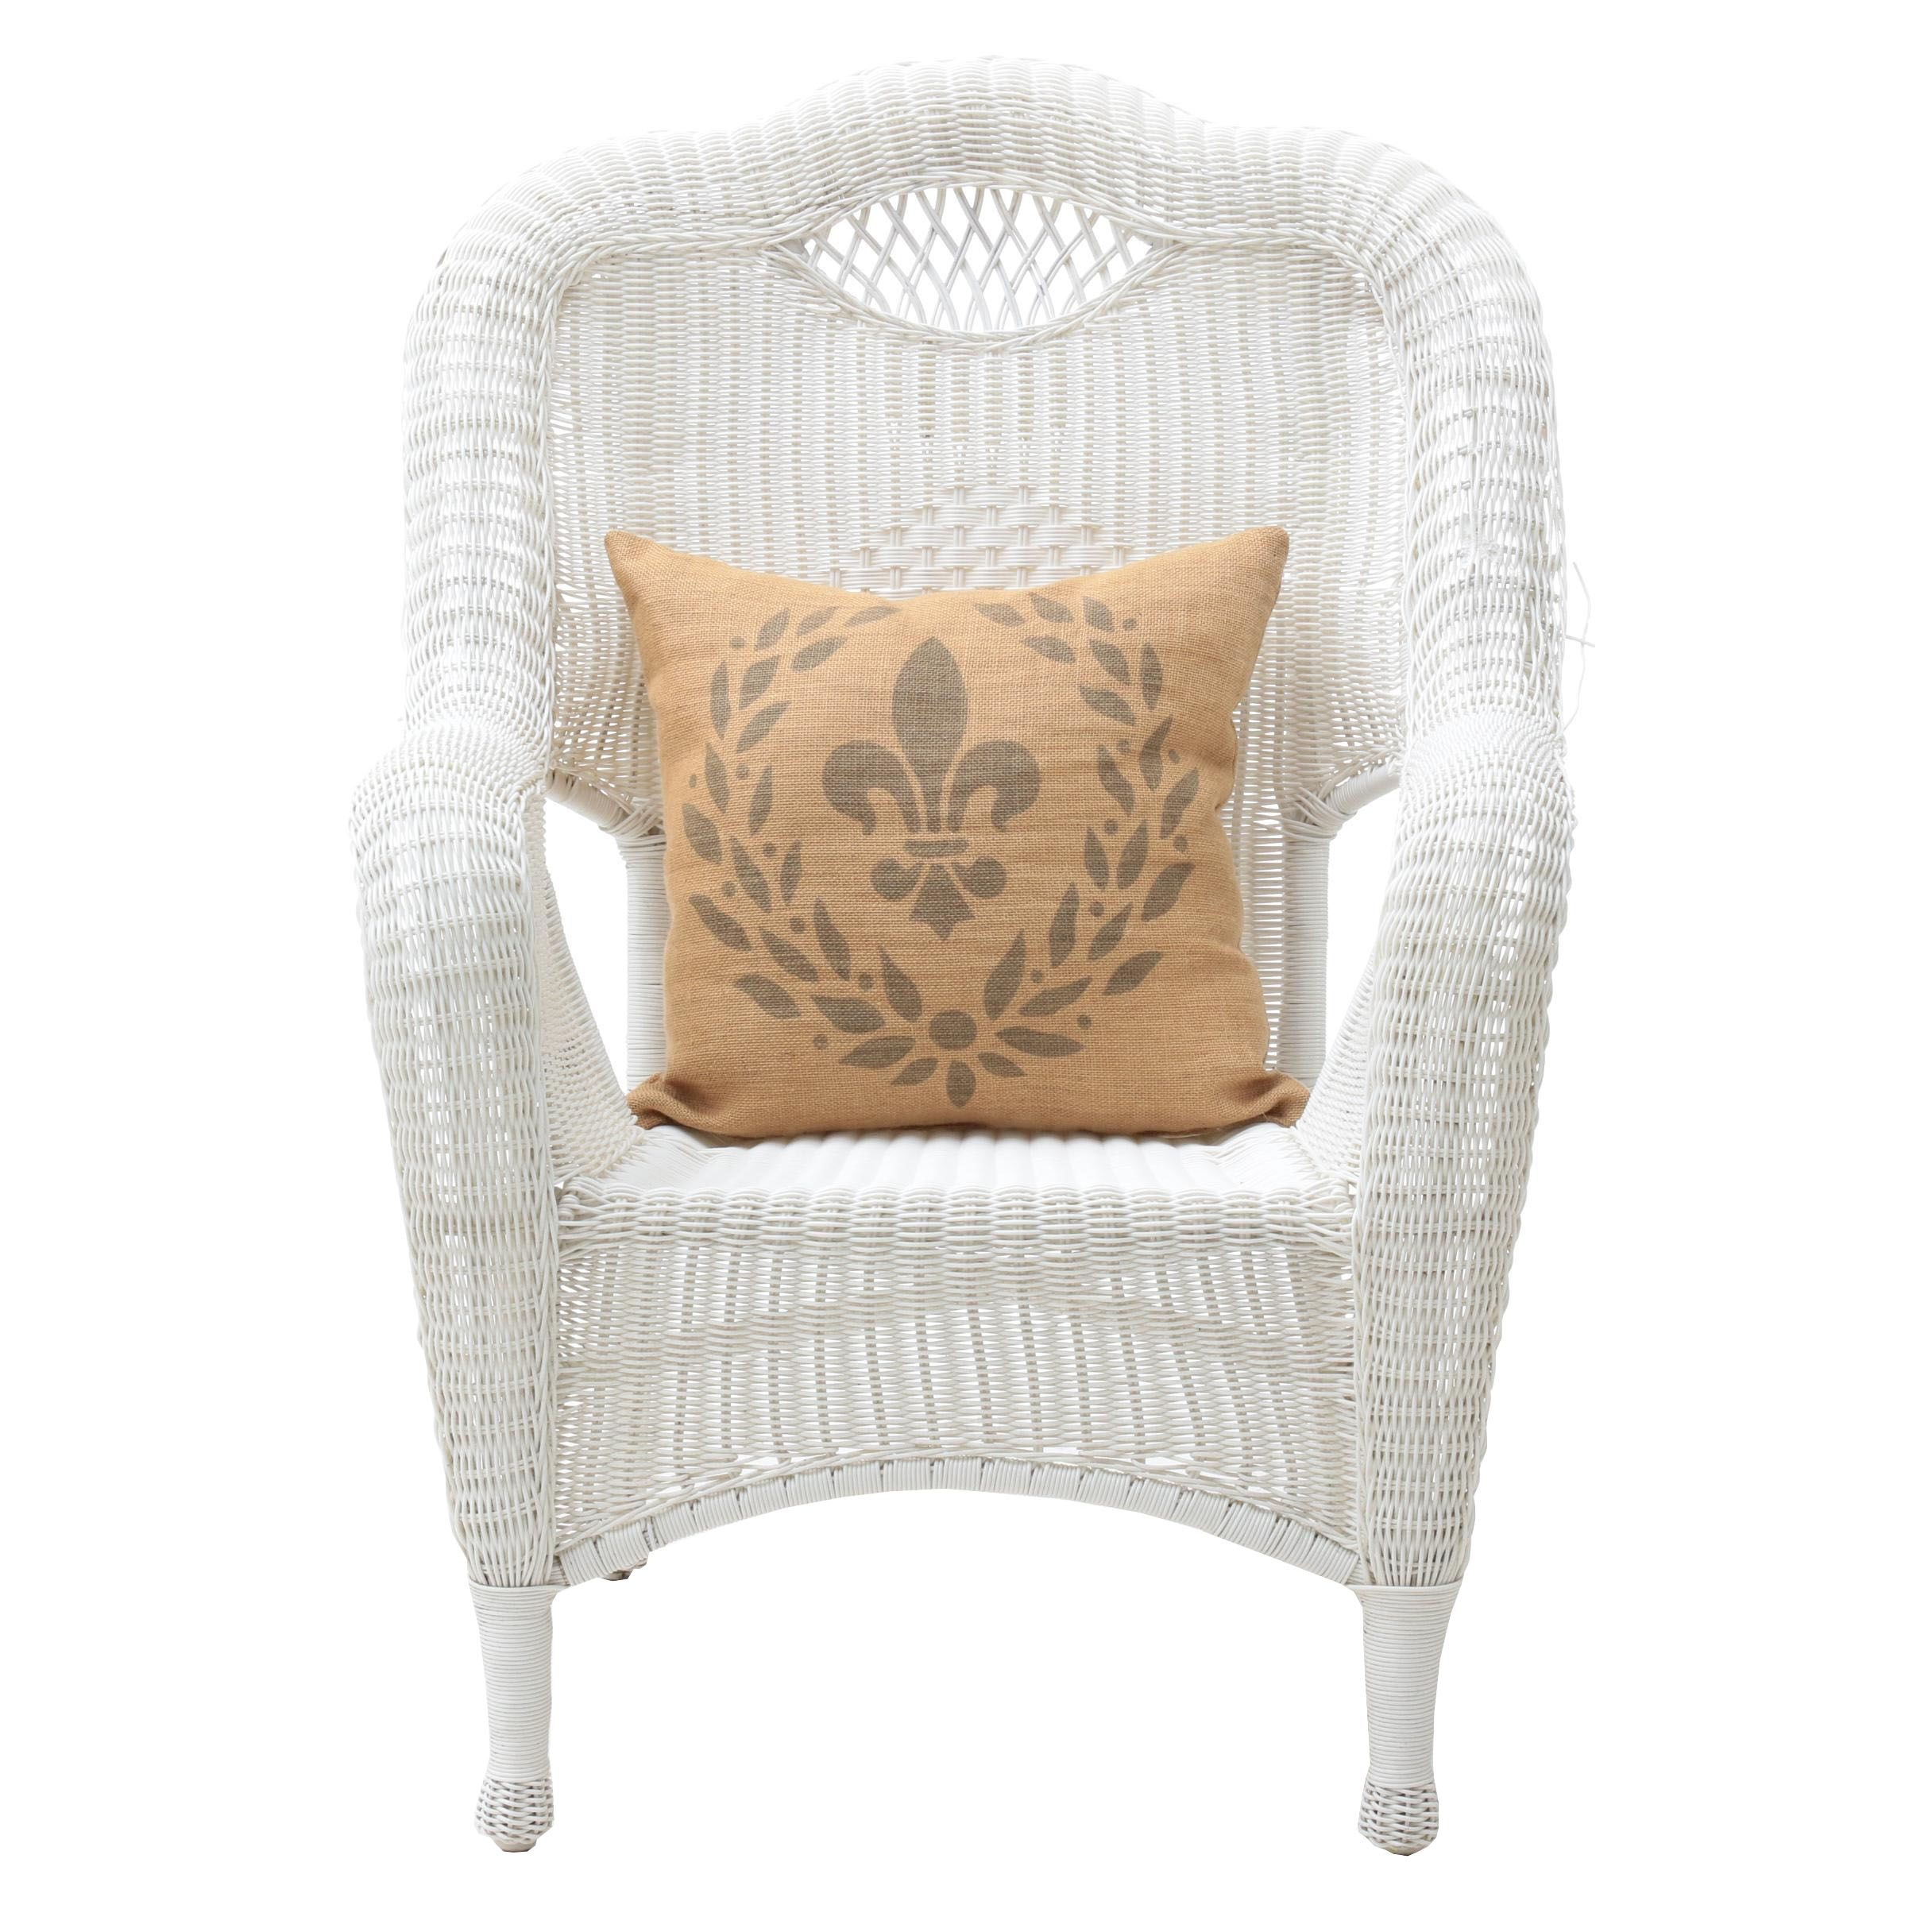 Contemporary White Wicker Weave Armchair